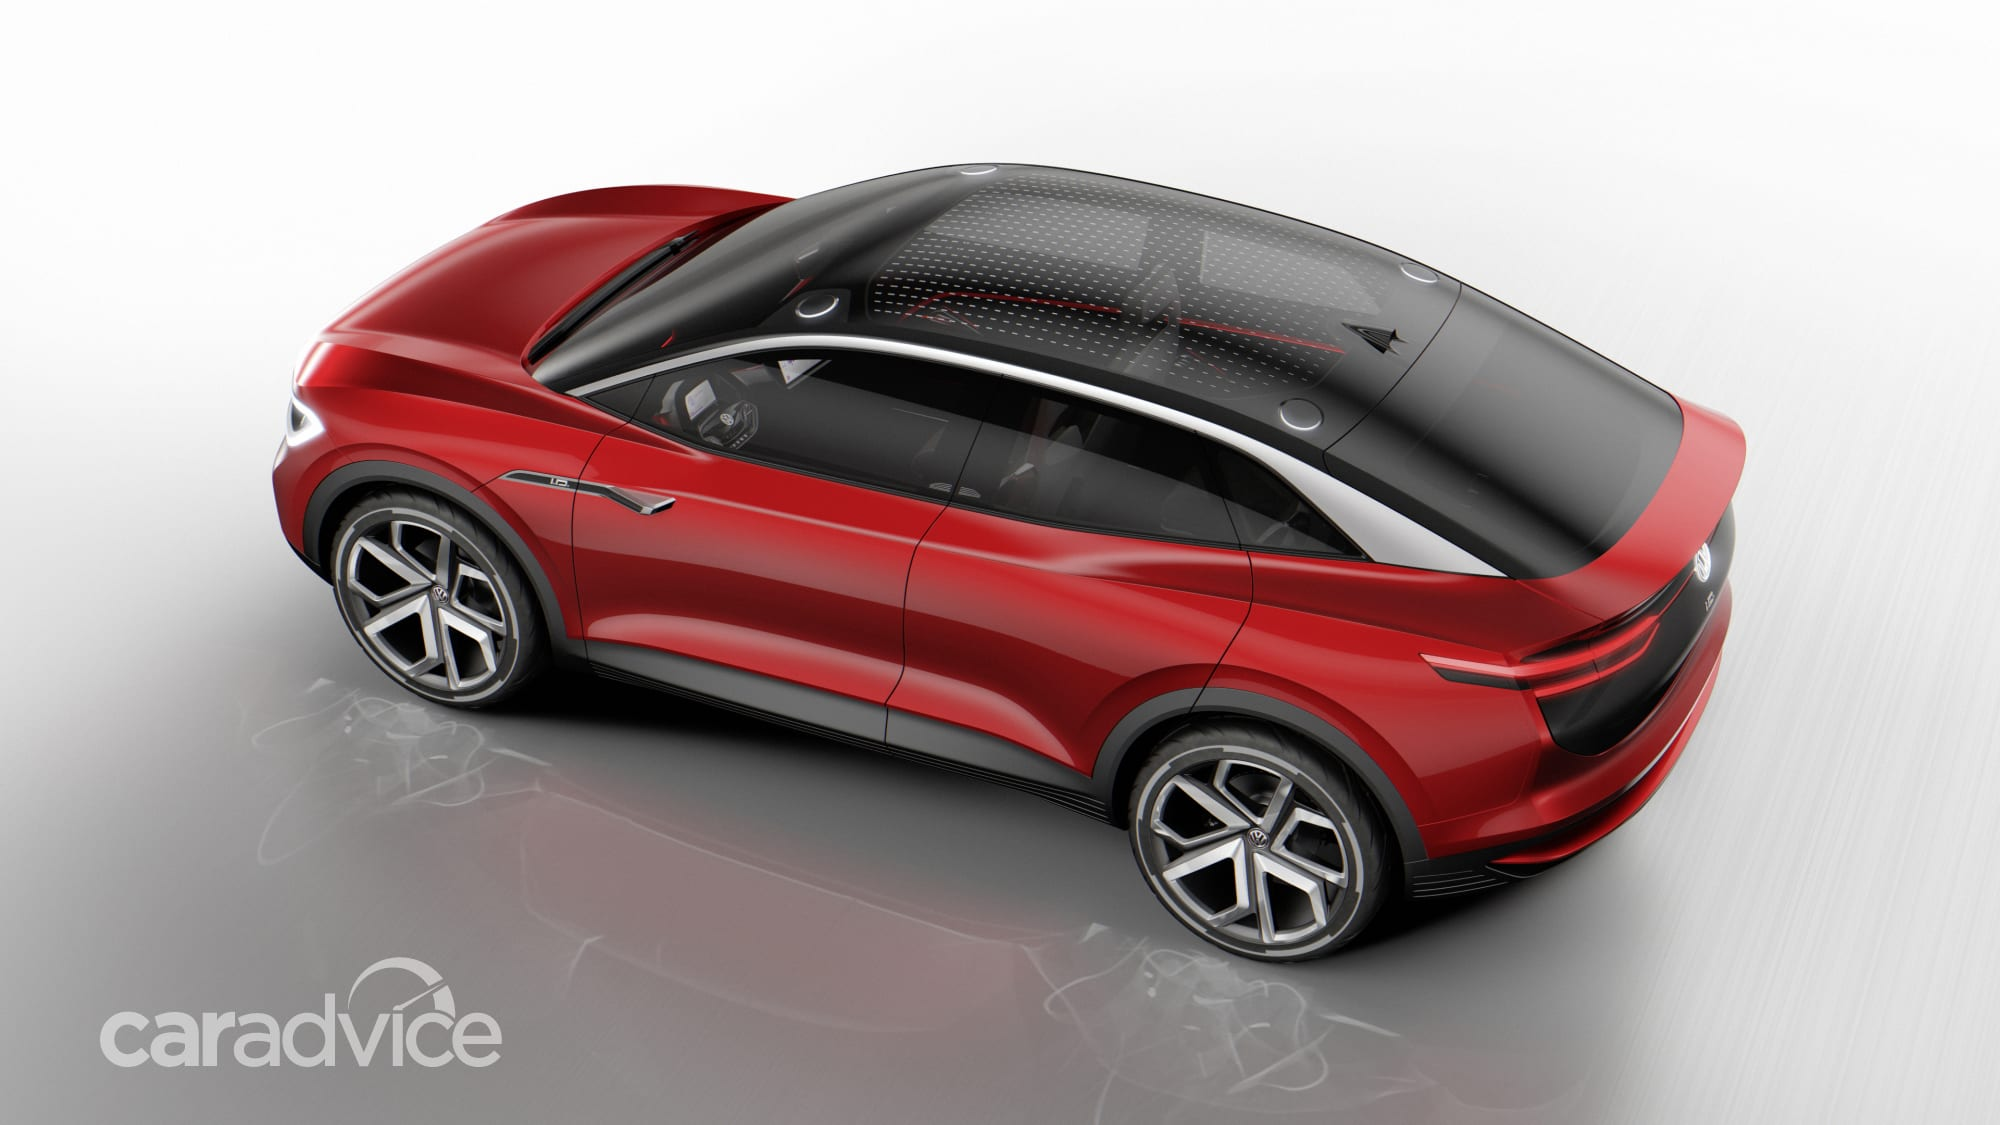 Volkswagen teases production ID.4 crossover | CarAdvice